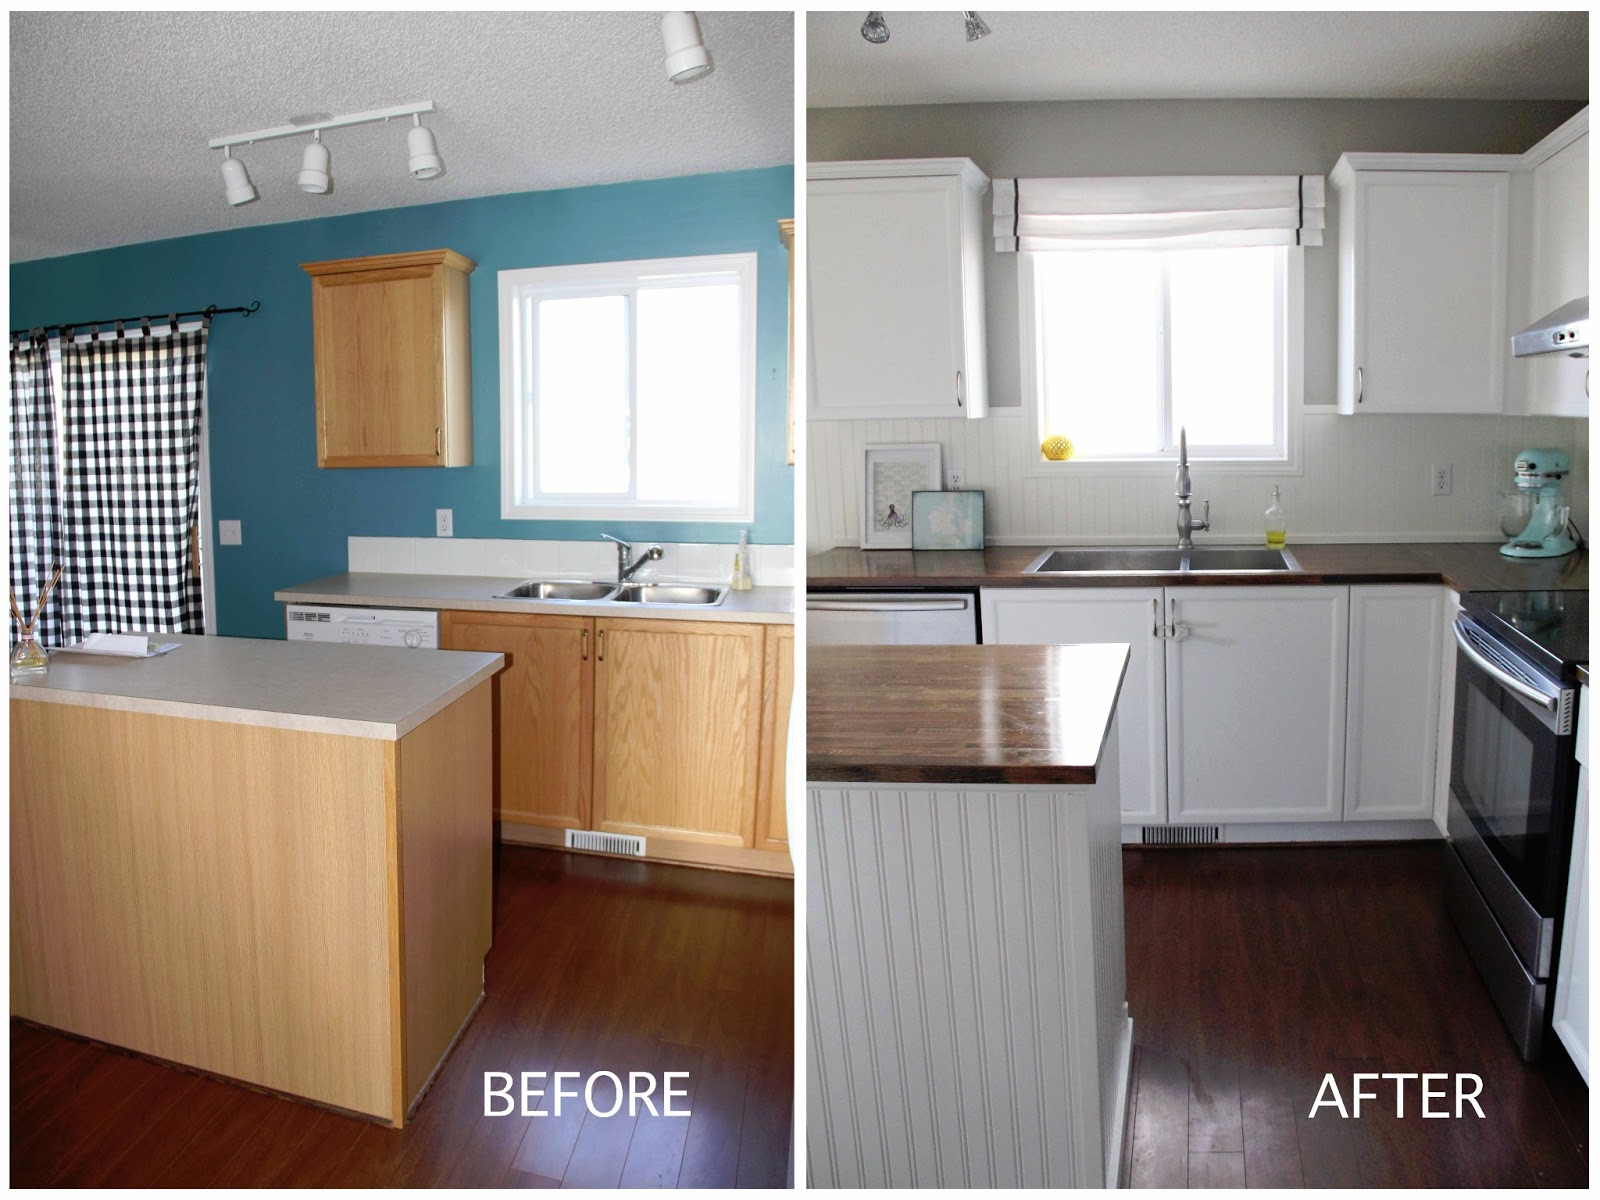 Diy Kitchen Remodel On A Budget bright family kitchen diy under $500 - brooklyn berry designs